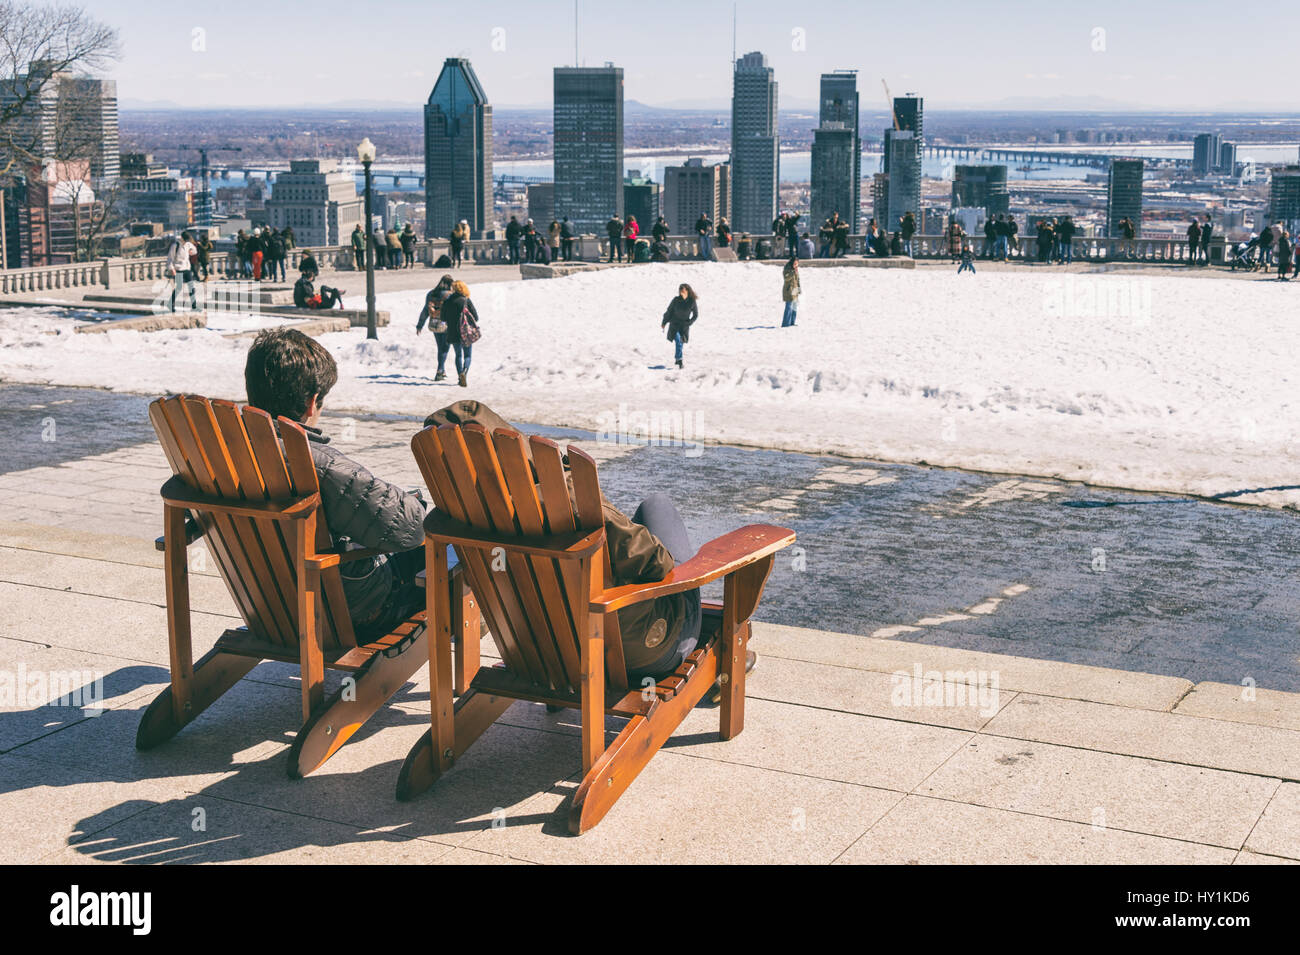 Montreal, CA - 30 March 2017: People sitting on a wooden lawn chair and enjoying a sunny spring day on Kondiaronk Stock Photo